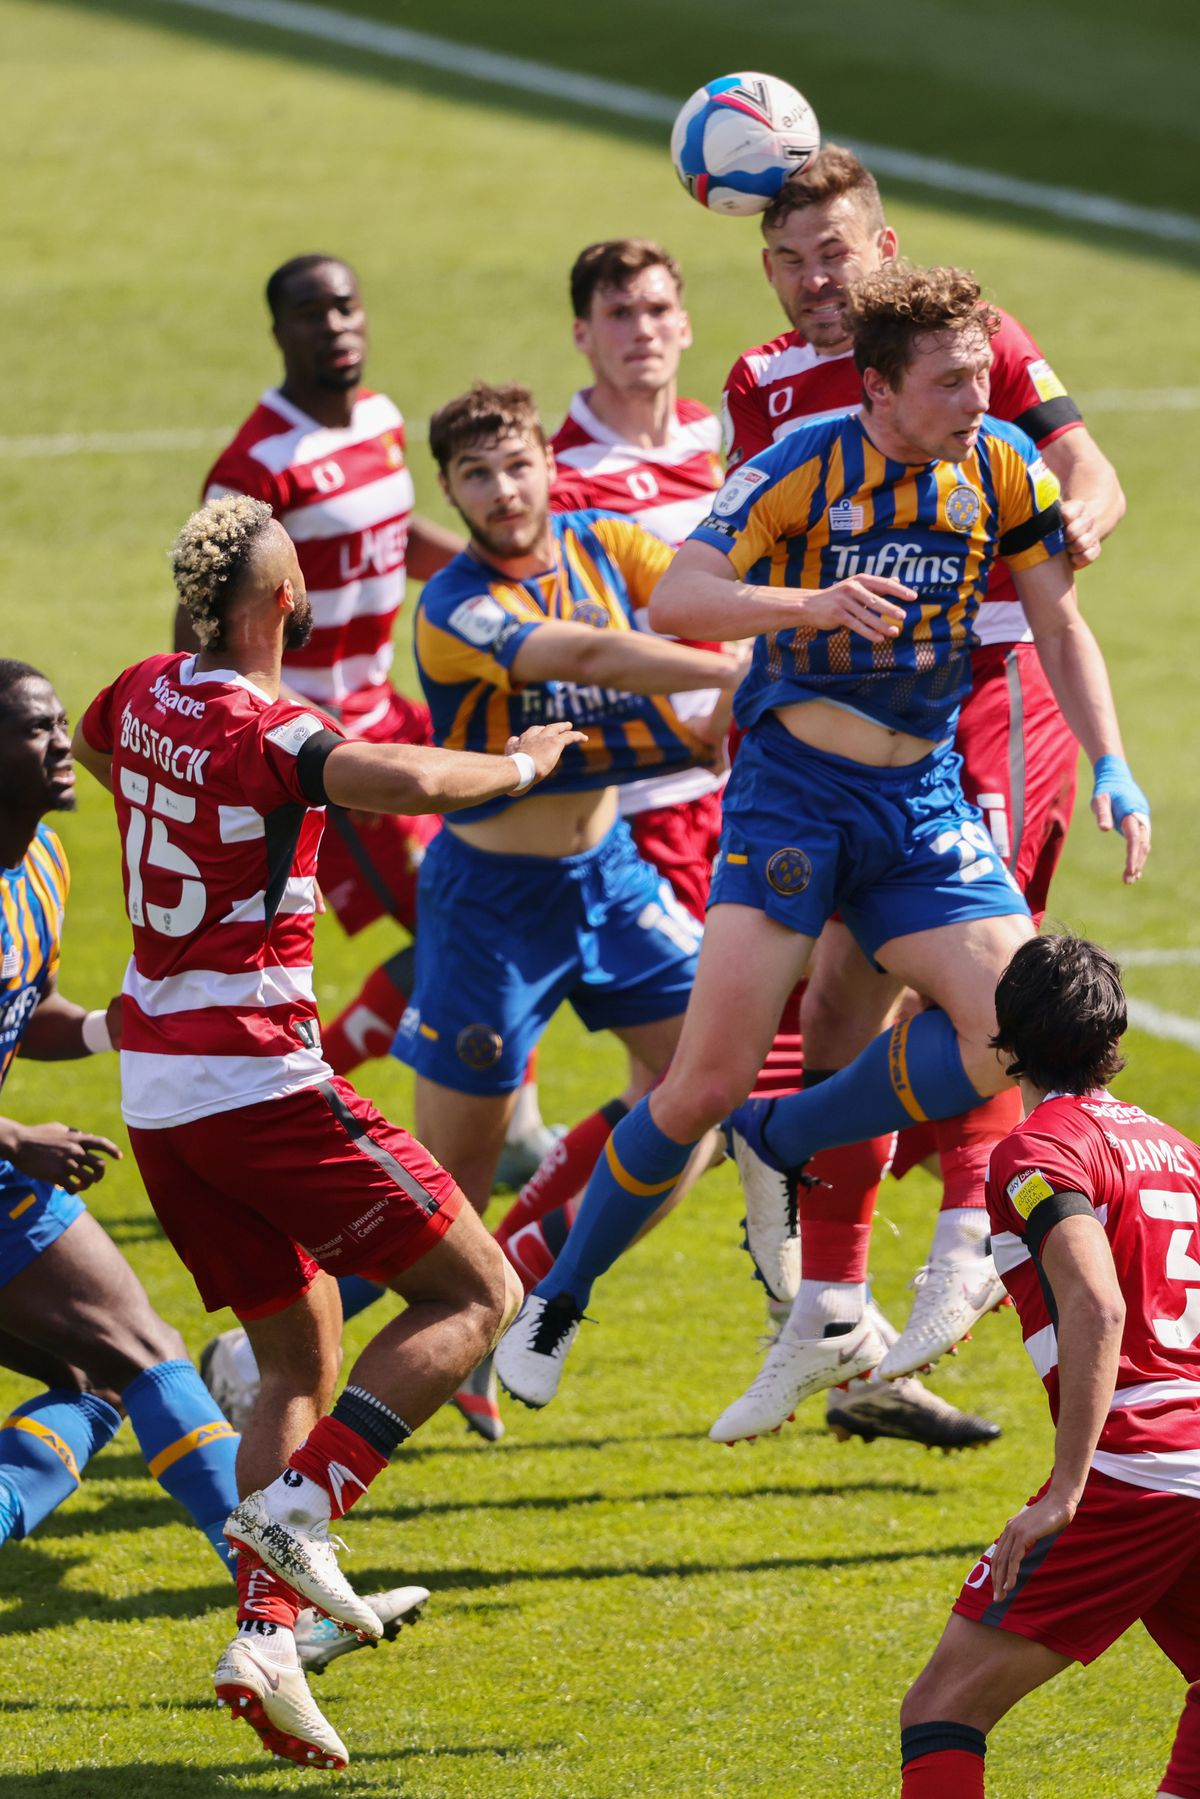 Shrewsbury's Matthew Pennington and Brad Walker competing against Doncaster on Saturday (AMA)